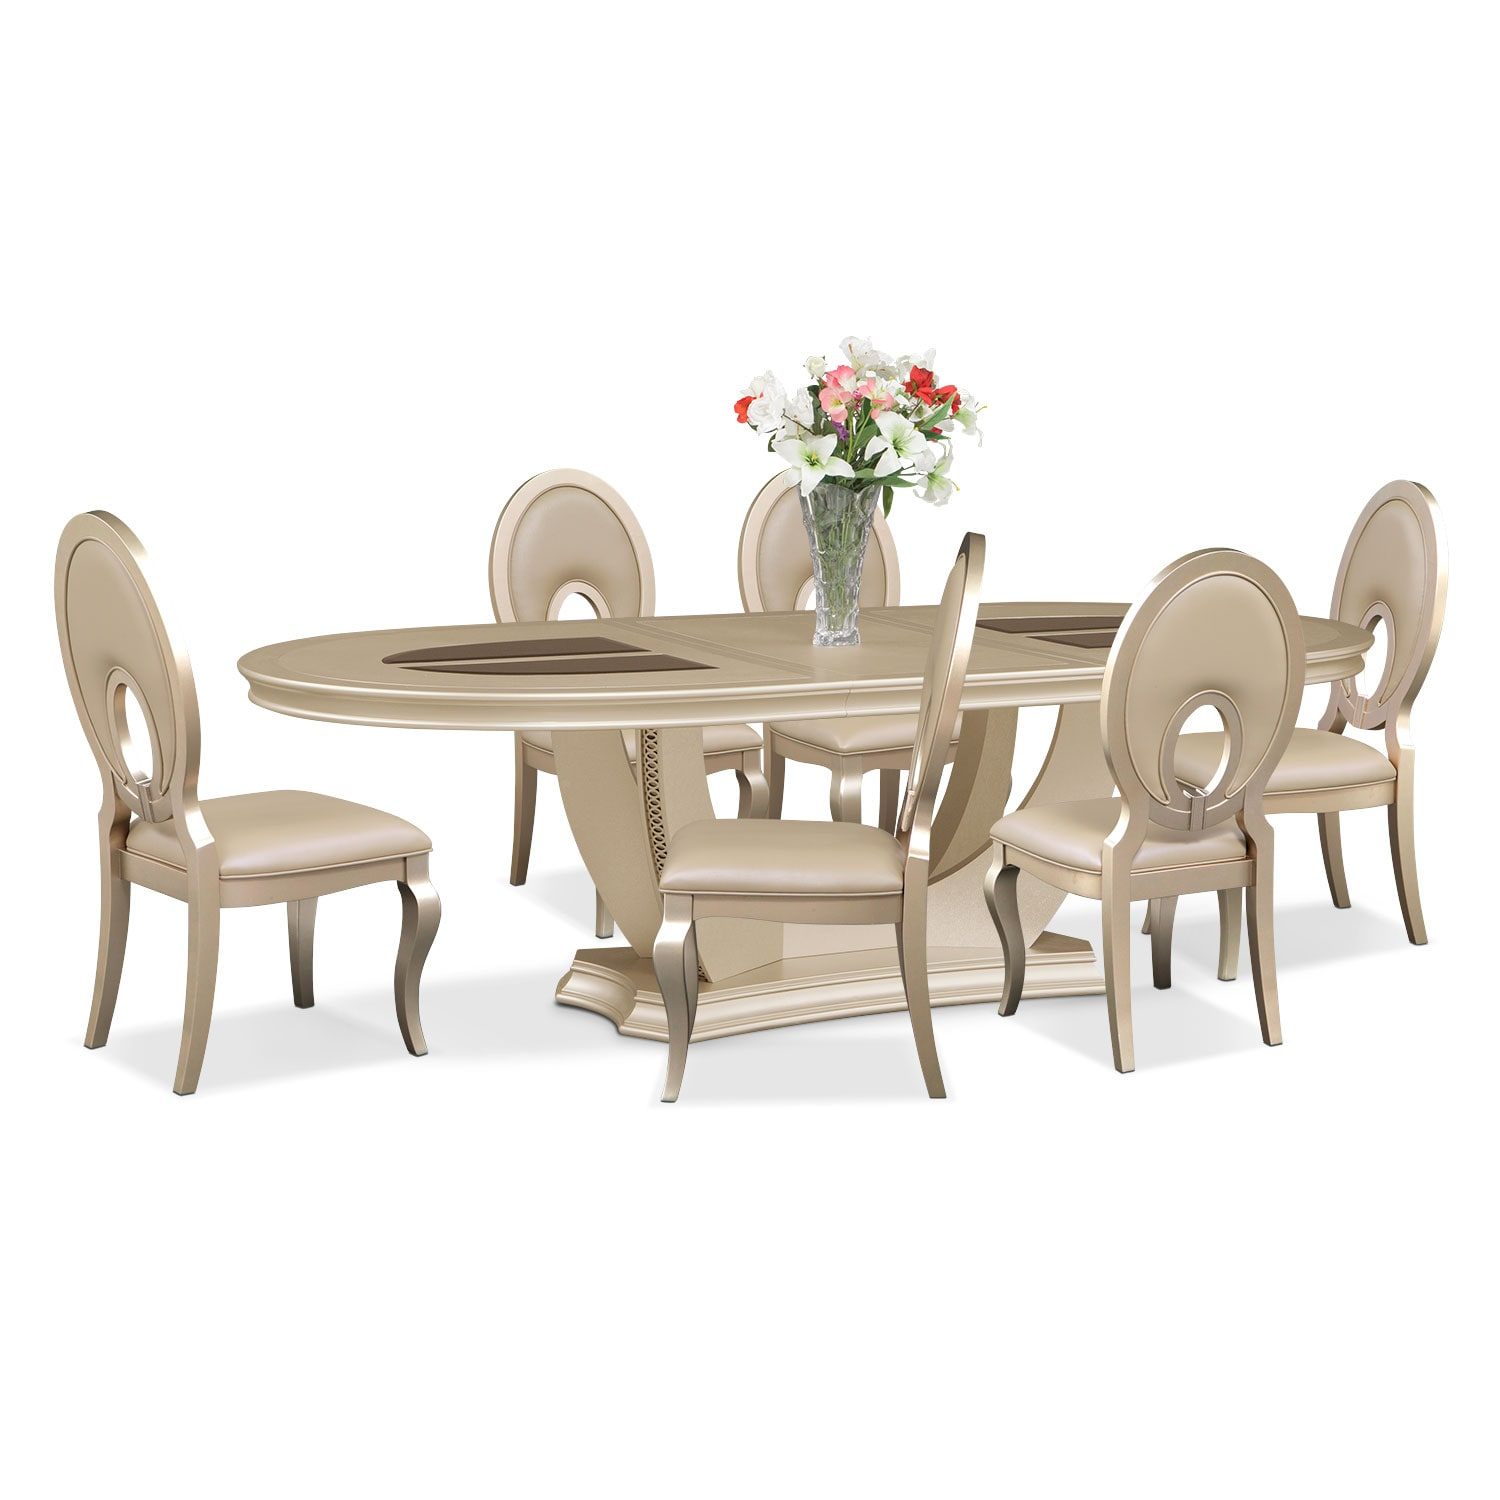 Dining Room Furniture - Allegro Oval Table and 6 Chairs - Platinum